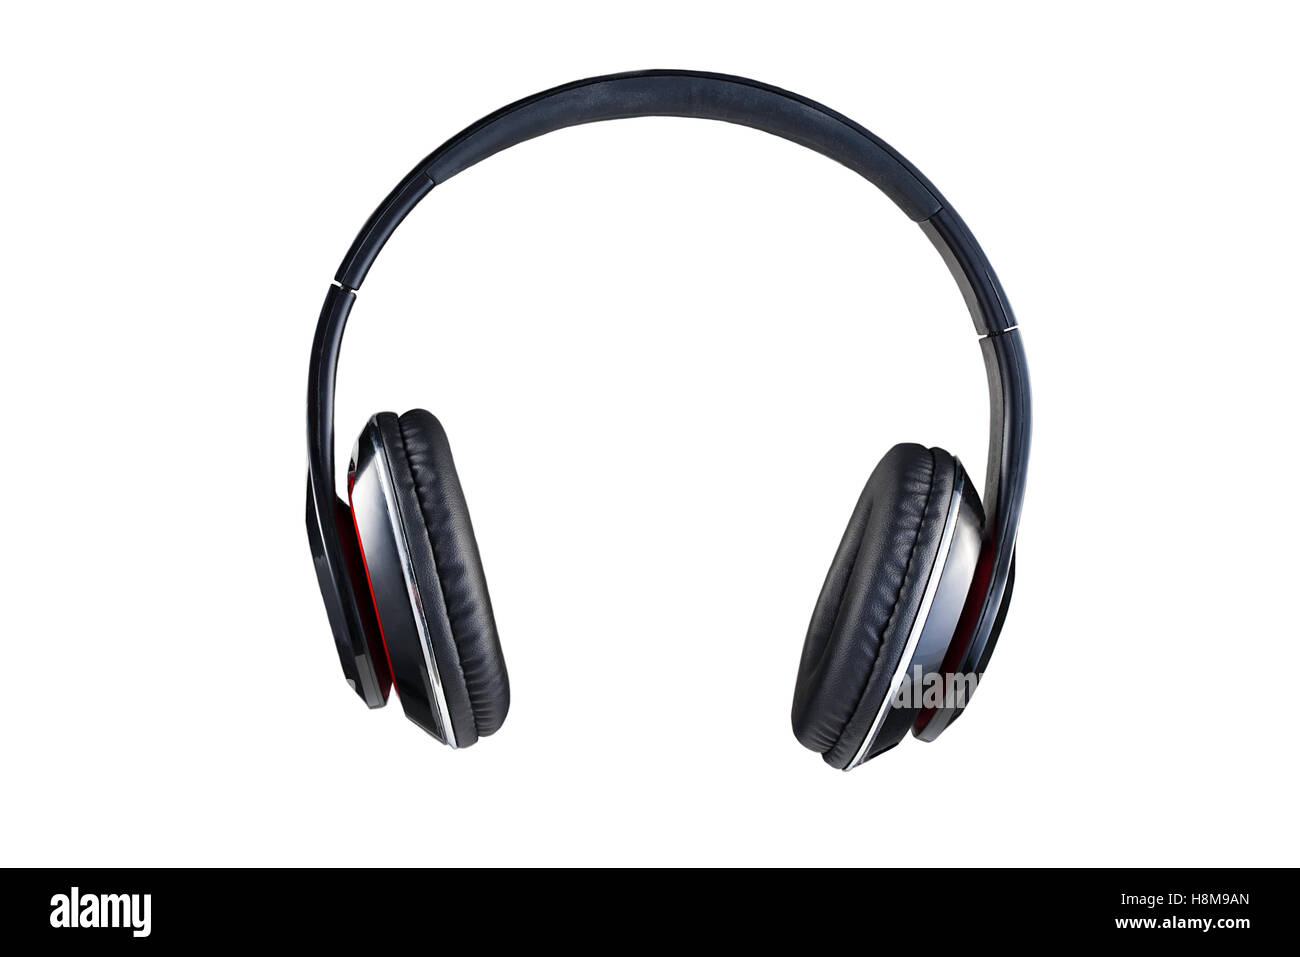 Wireless black headphones front view isolated on white background - Stock Image